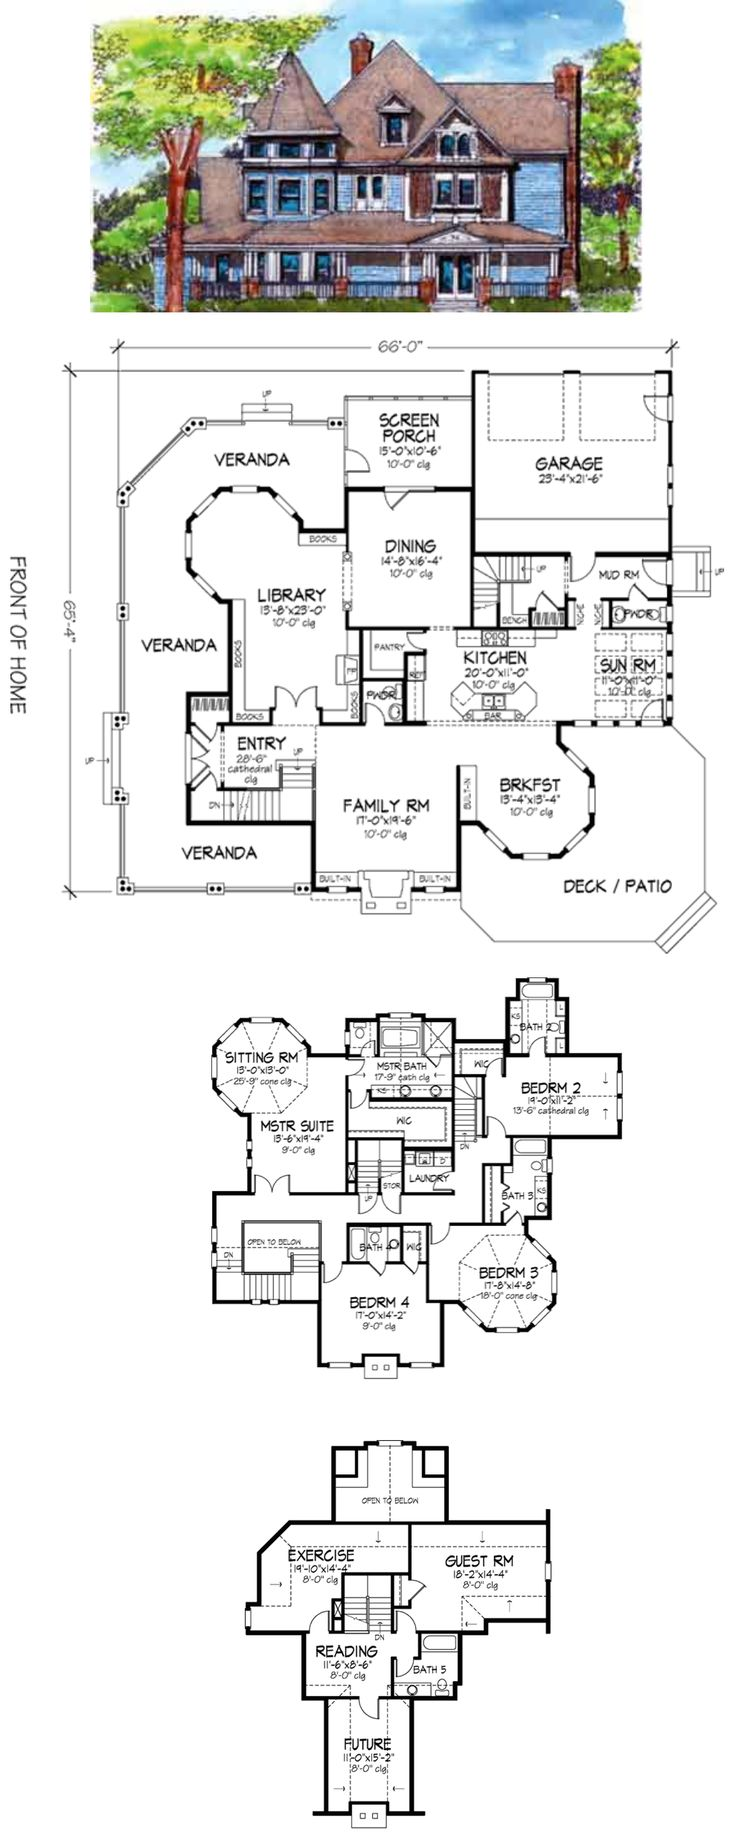 best 25 floor plan of house ideas on pinterest design of house best 25 floor plan of house ideas on pinterest design of house house layout plans and house floor plan design